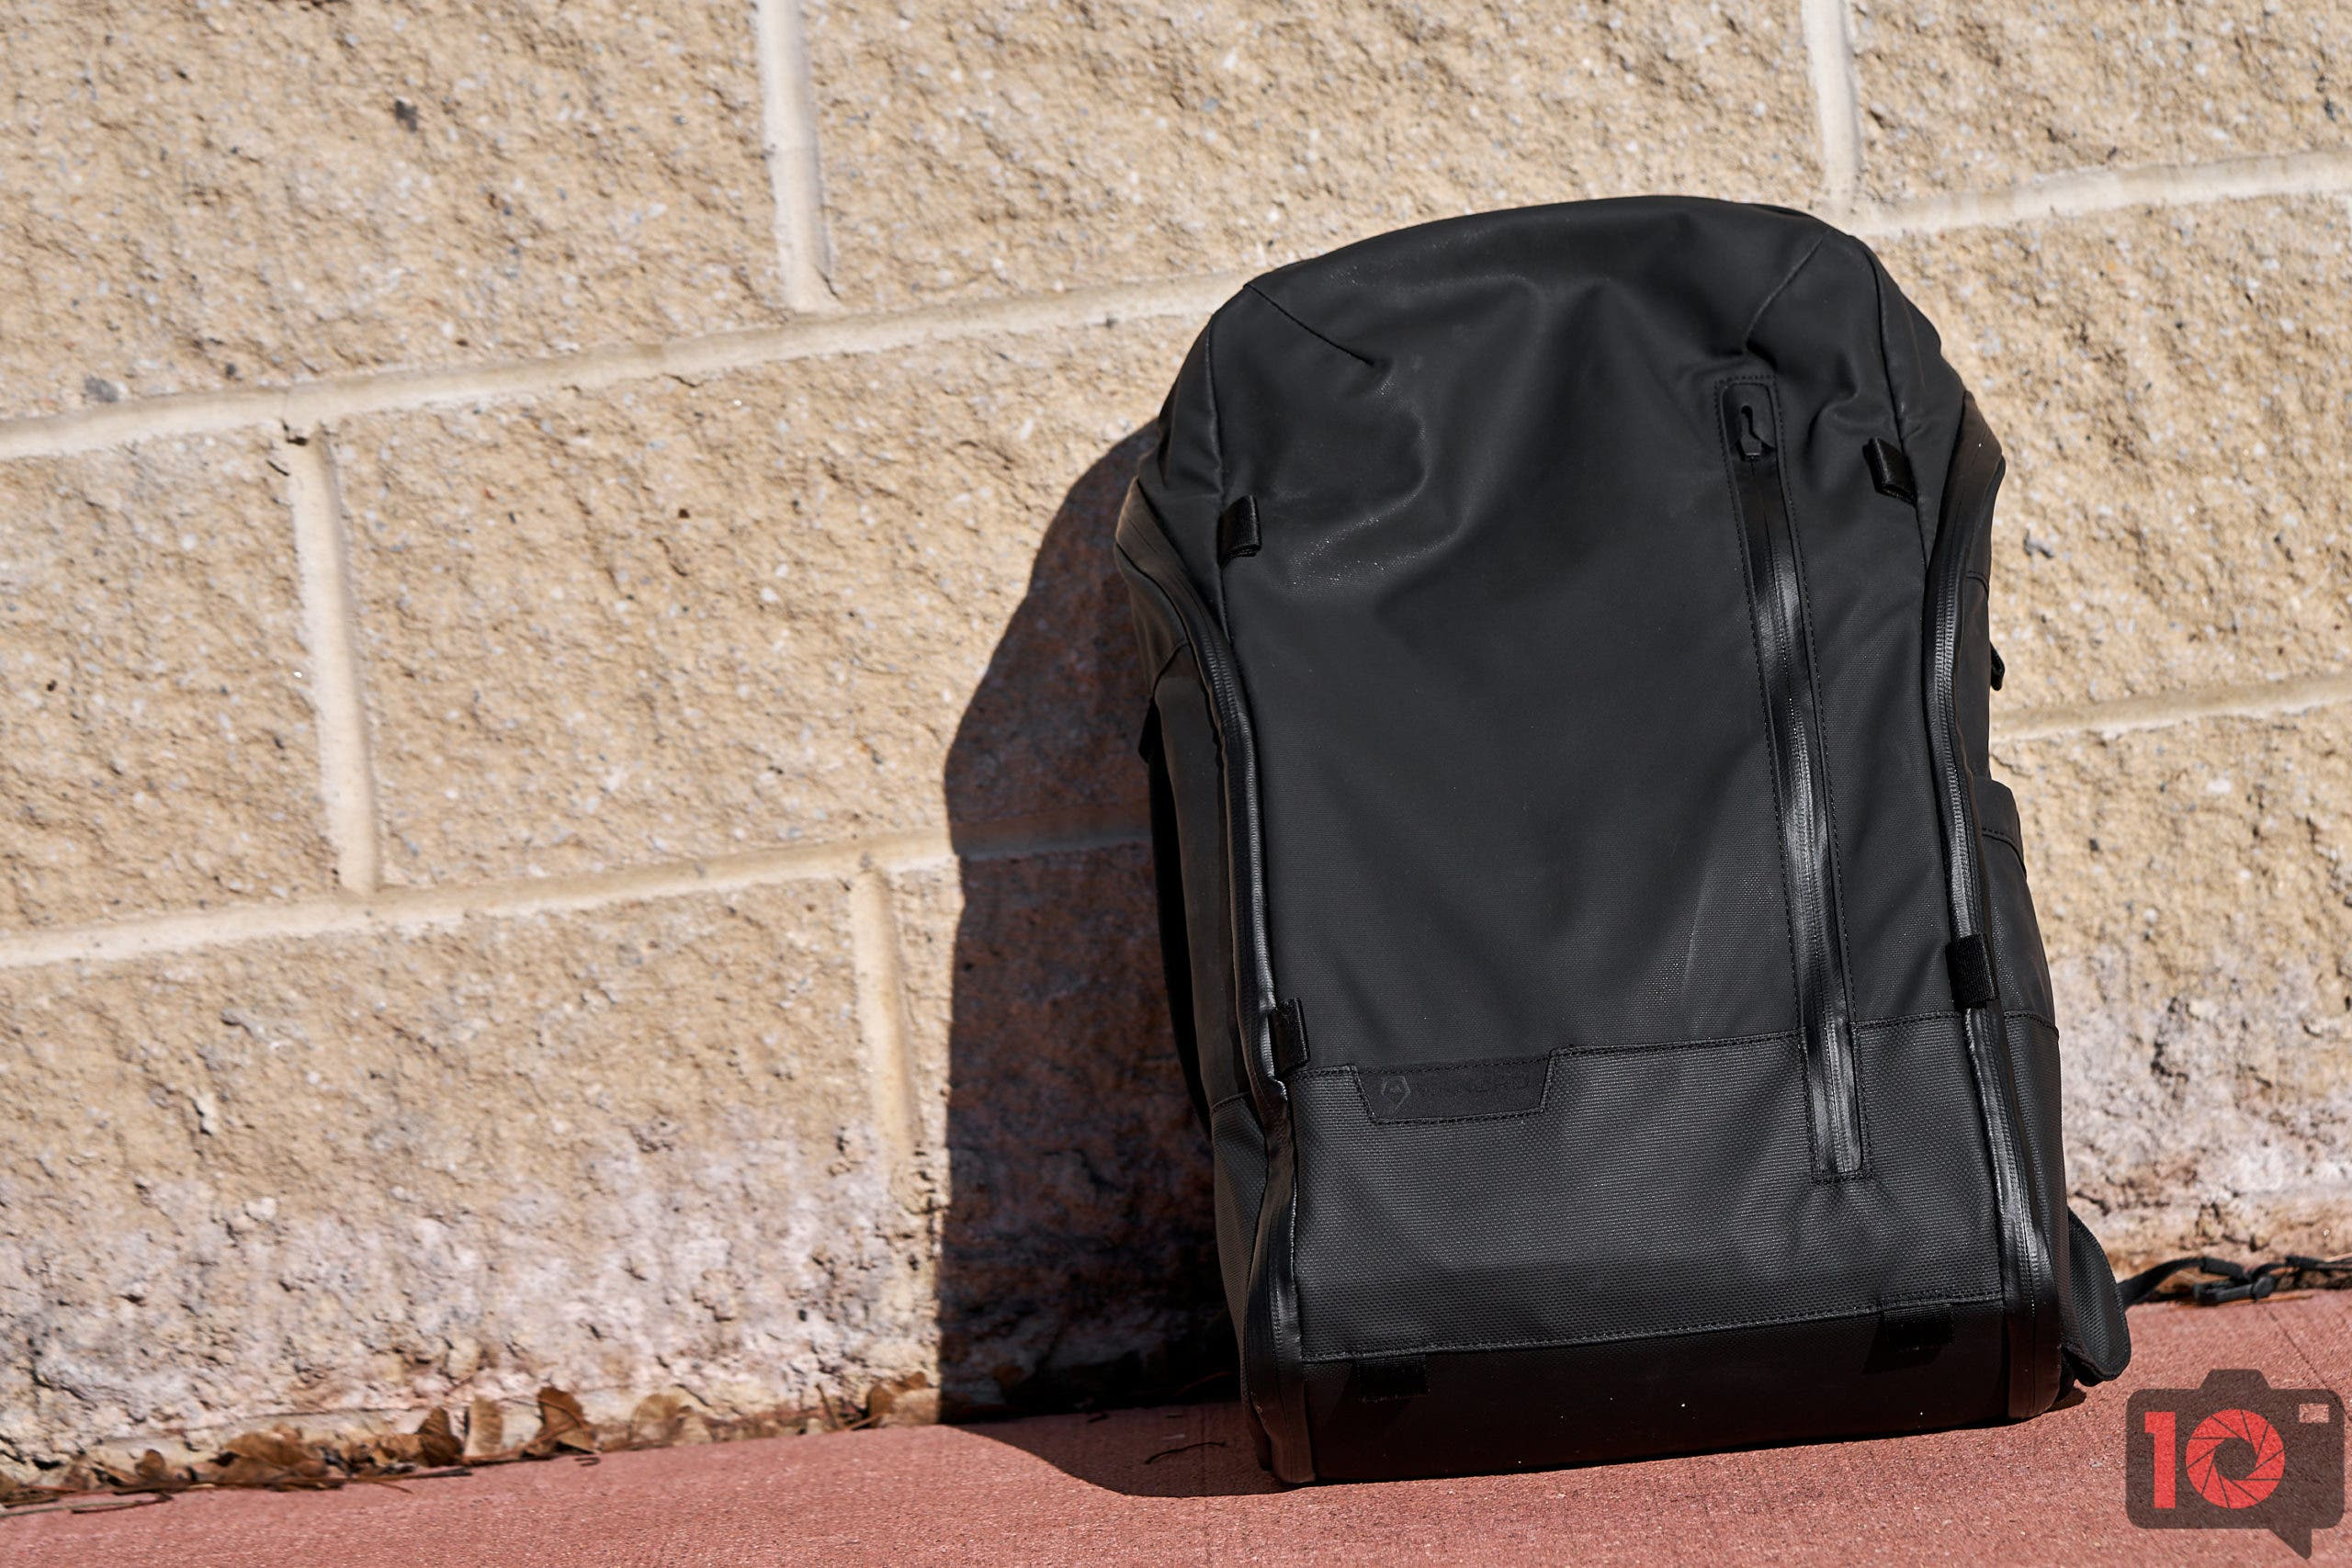 Camera Bag Review: WANDRD DUO Daypack (It's Almost Perfect)